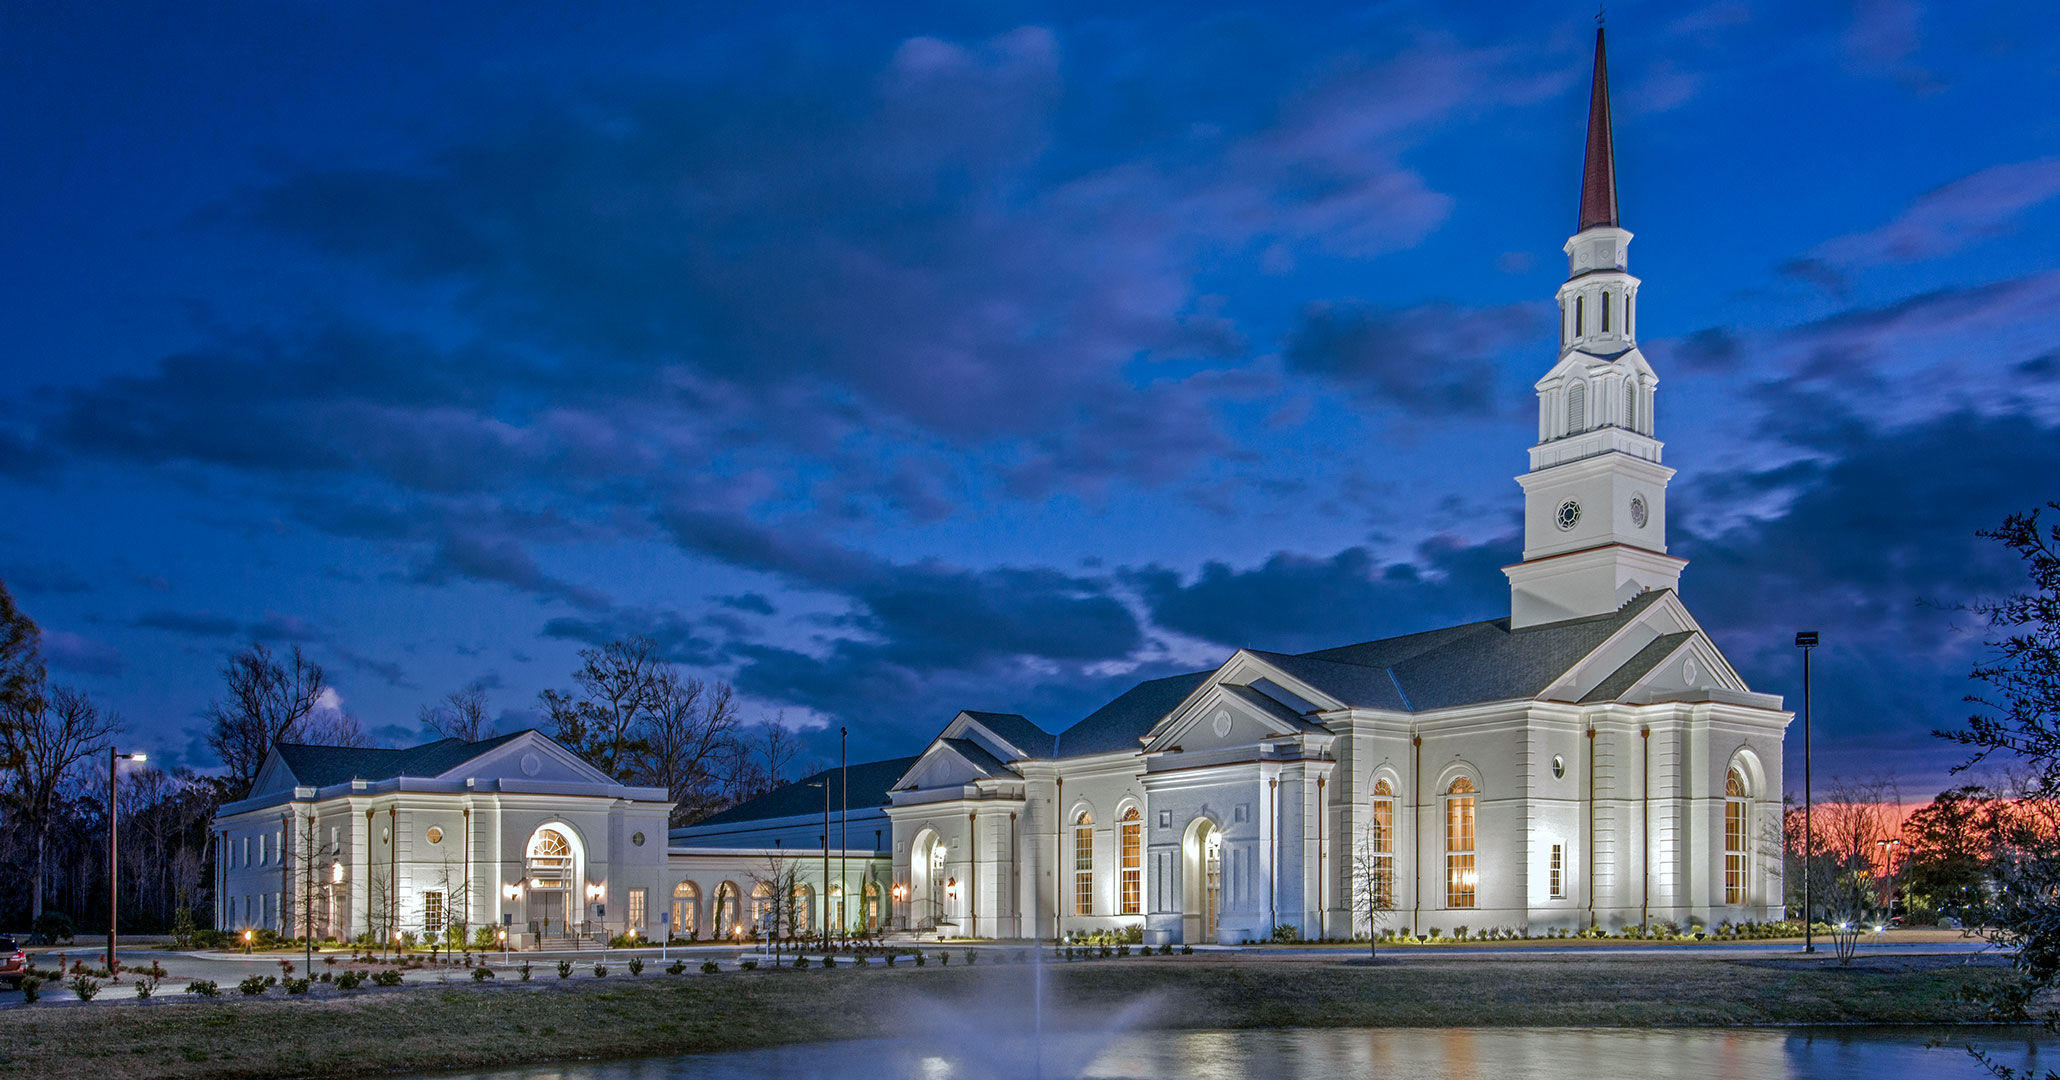 Boudreaux worked with First Presbyterian Church in Myrtle Beach, SC to design church exteriors.